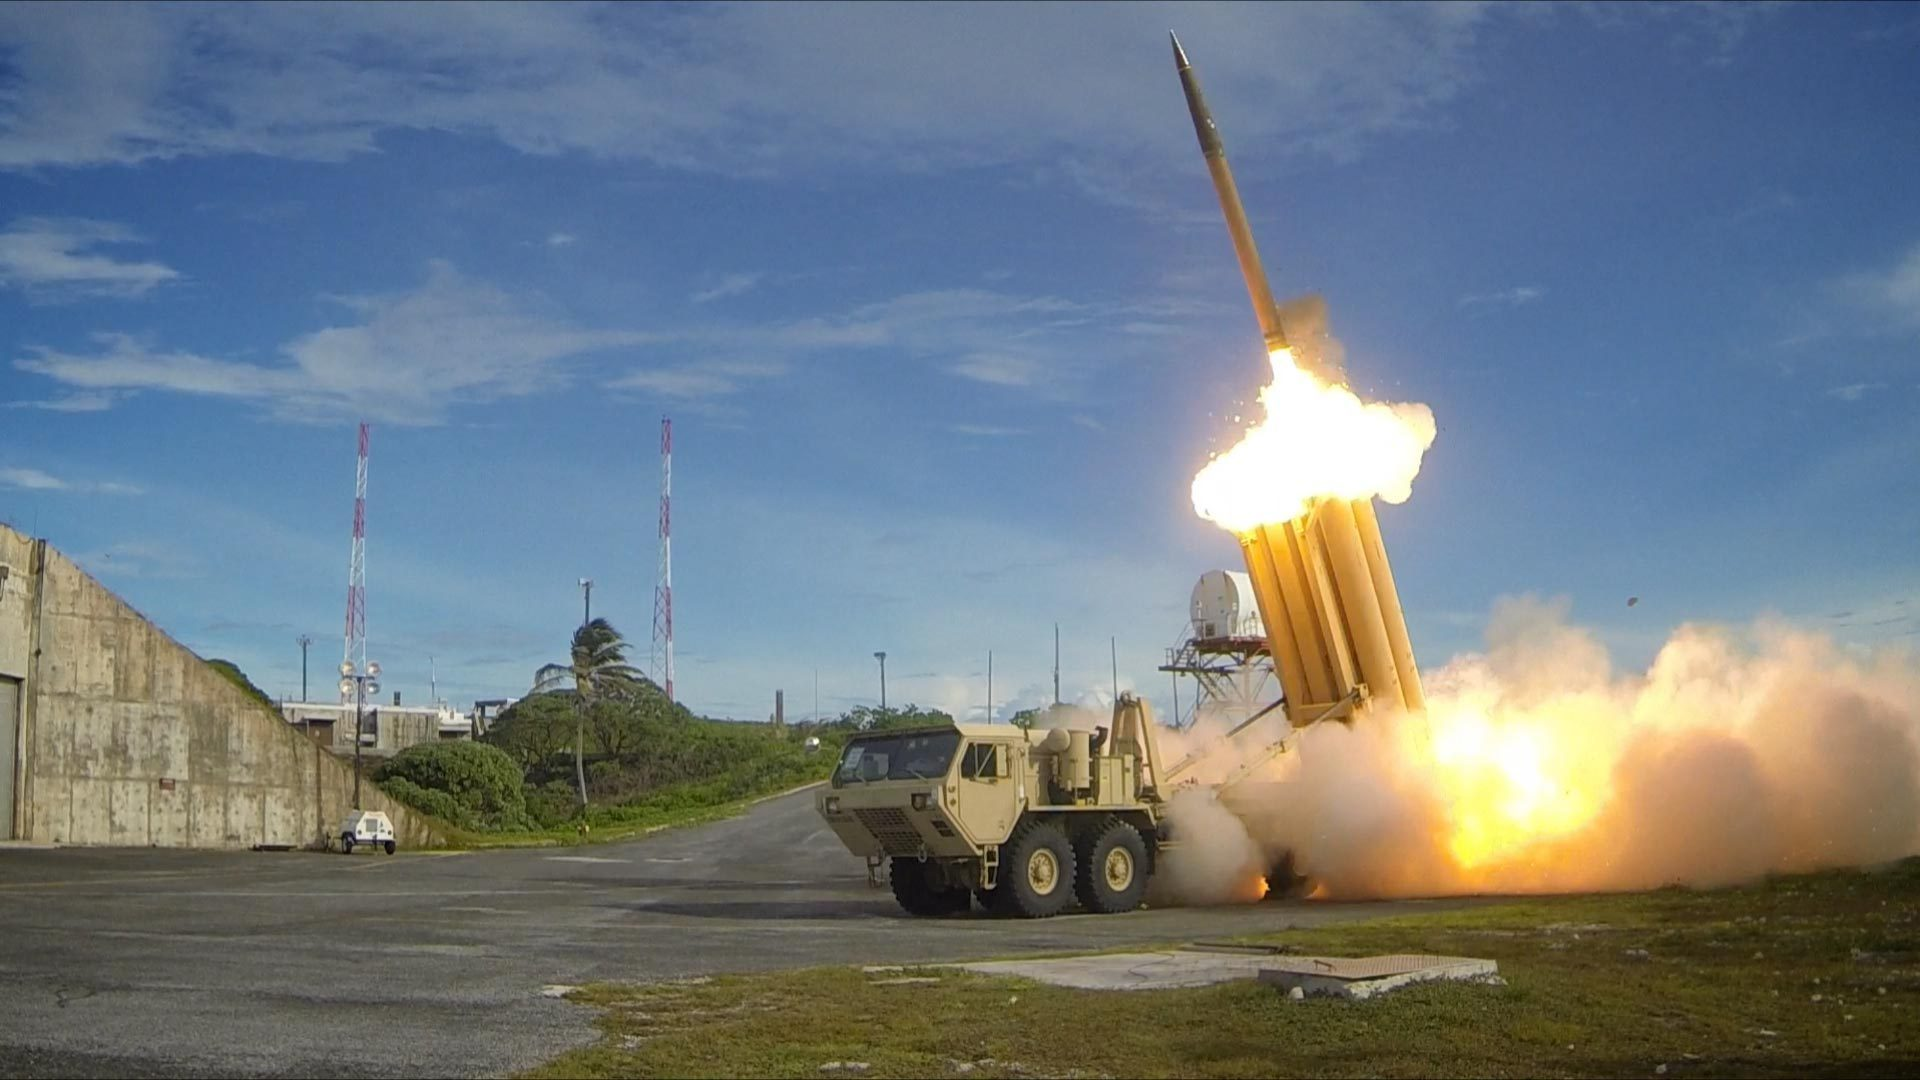 Two Terminal High Altitude Area Defense (THAAD) interceptors launched during a successful intercept test